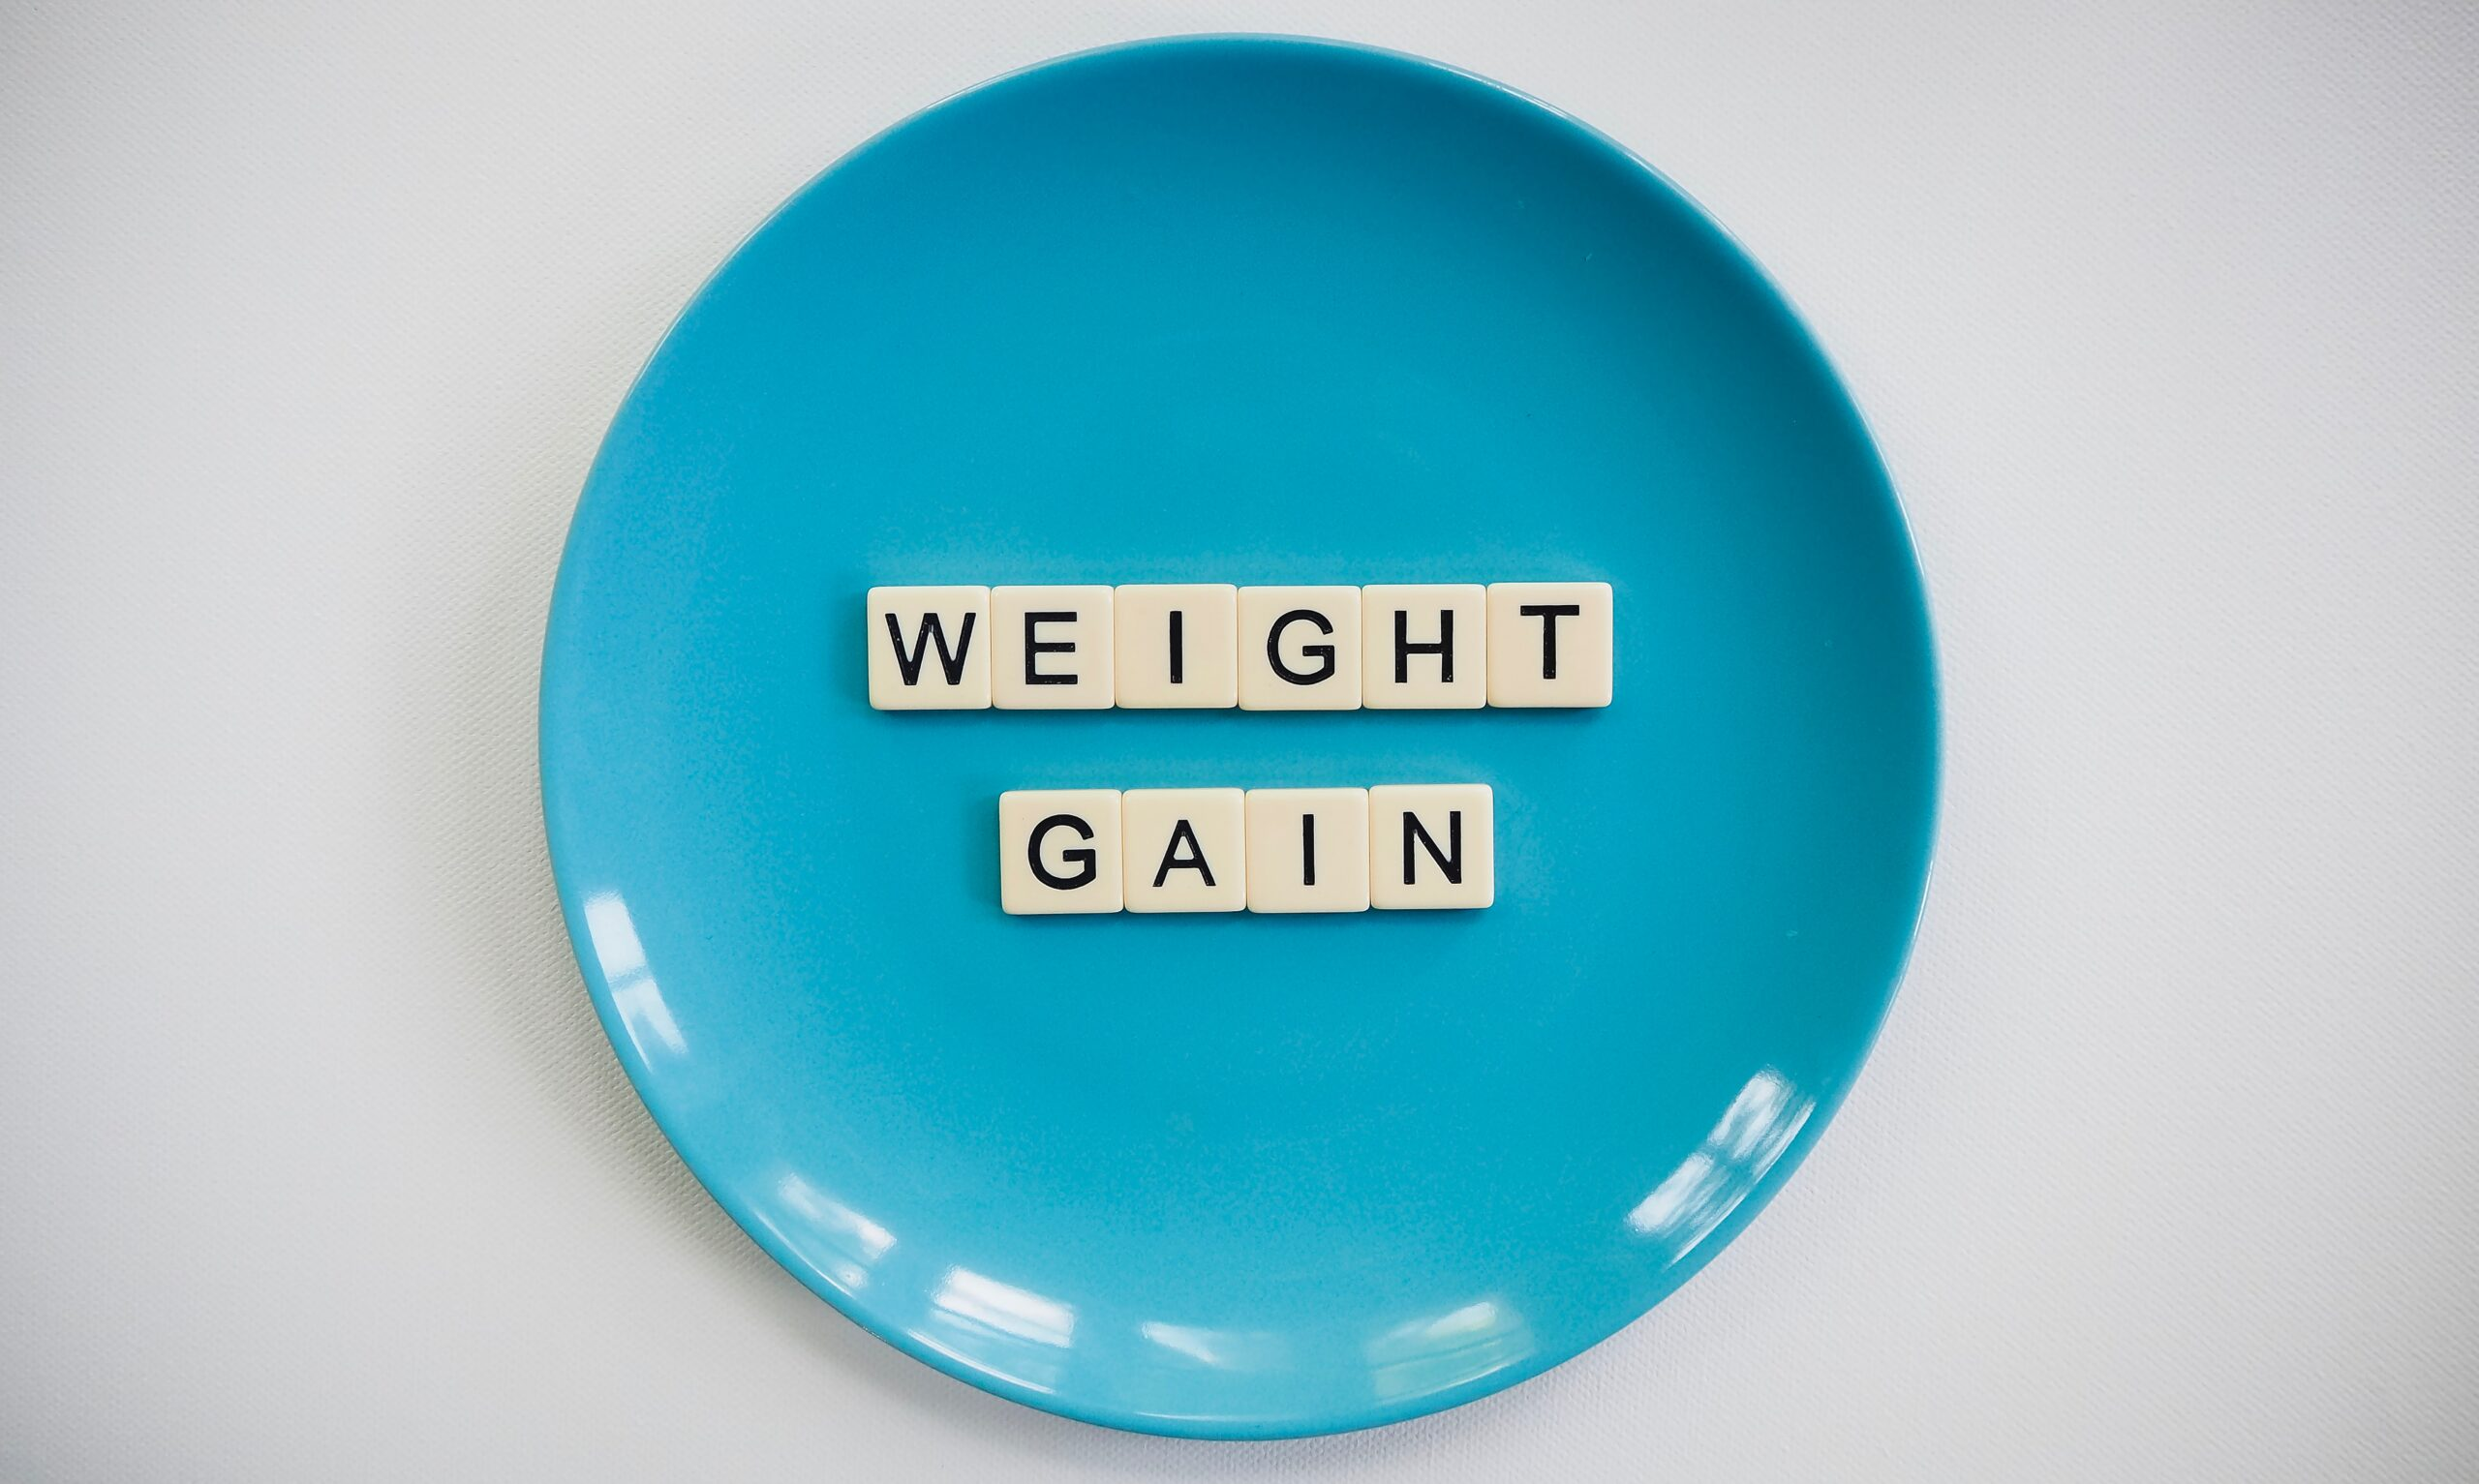 Excess weight and chronic disease